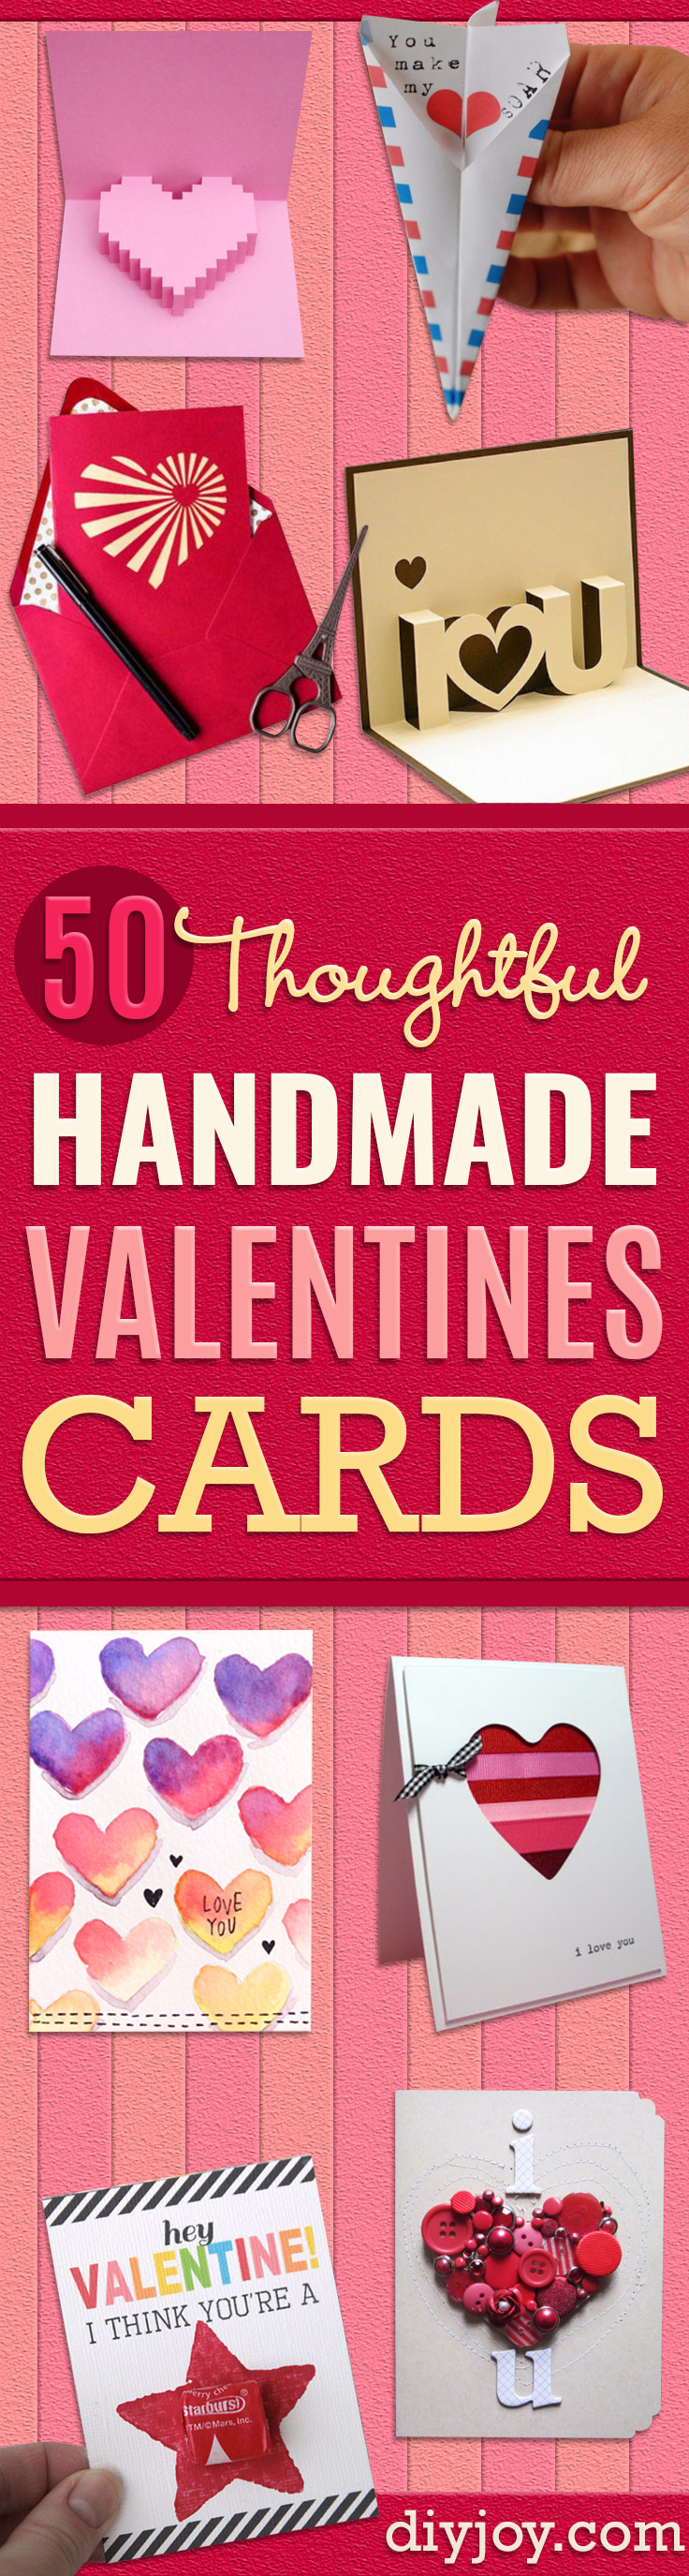 Diy Valentines Day Cards - Easy Handmade Cards For Him And Her, Kids,  Freinds